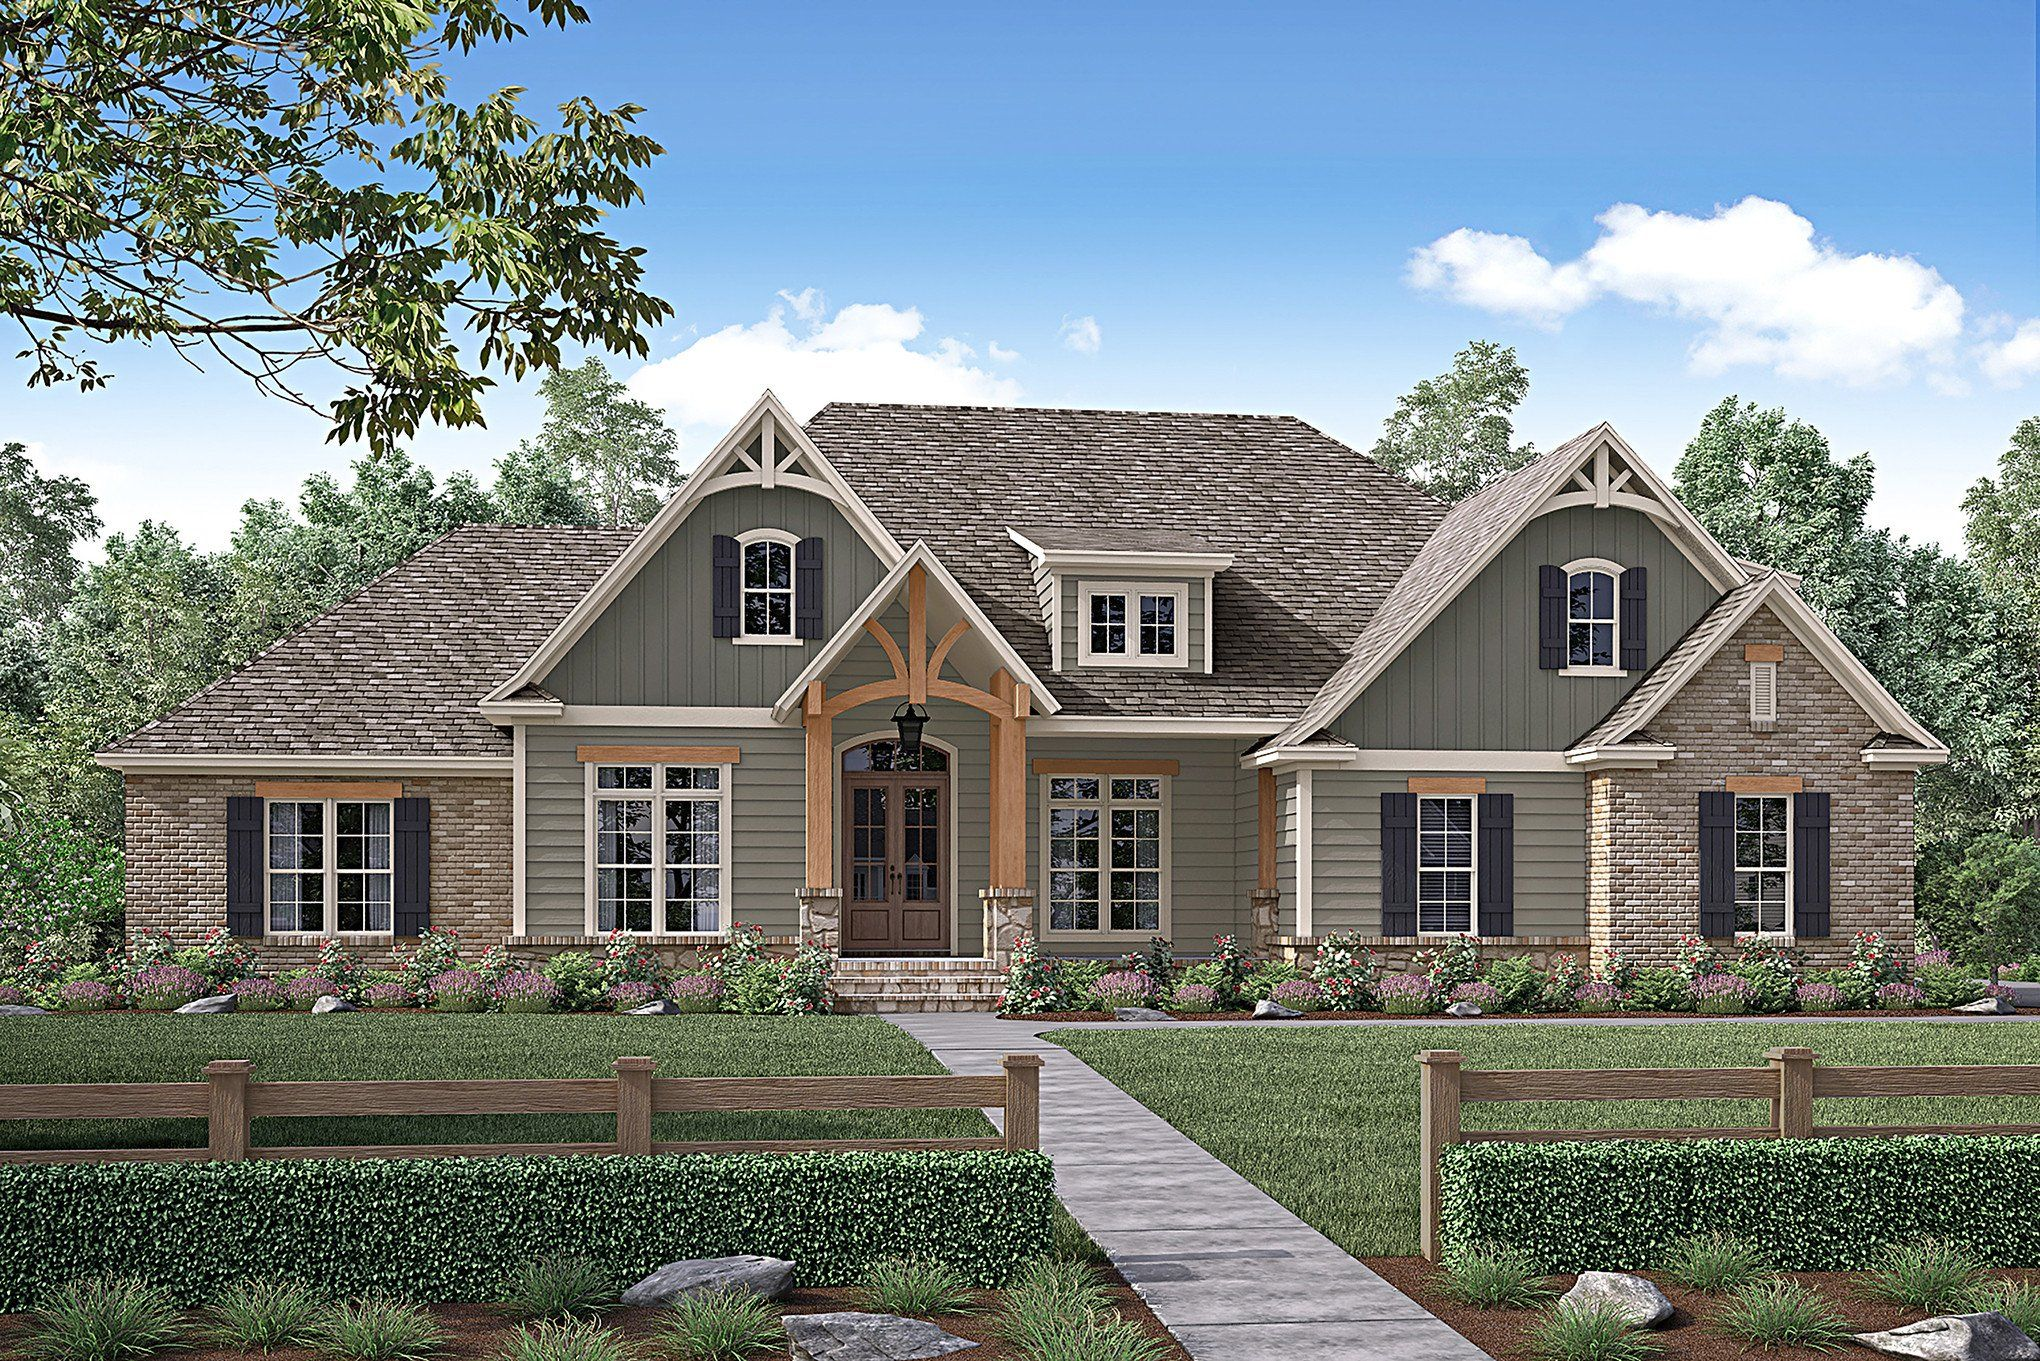 This beautiful 4 bedroom, Craftsman style home offers great ... on small house plans, acadian style house plans, western ranch house plans, rectangular house plans, french normandy house plans, classic house plans, cottage house plans, chalet house plans, mountain house plans, carriage house plans, l-shaped house plans, country house plans, luxury house plans, craftsman house plans, lodge house plans, basic house plans, lake house plans, bungalow house plans, ranch style house plans, mid century modern house plans,